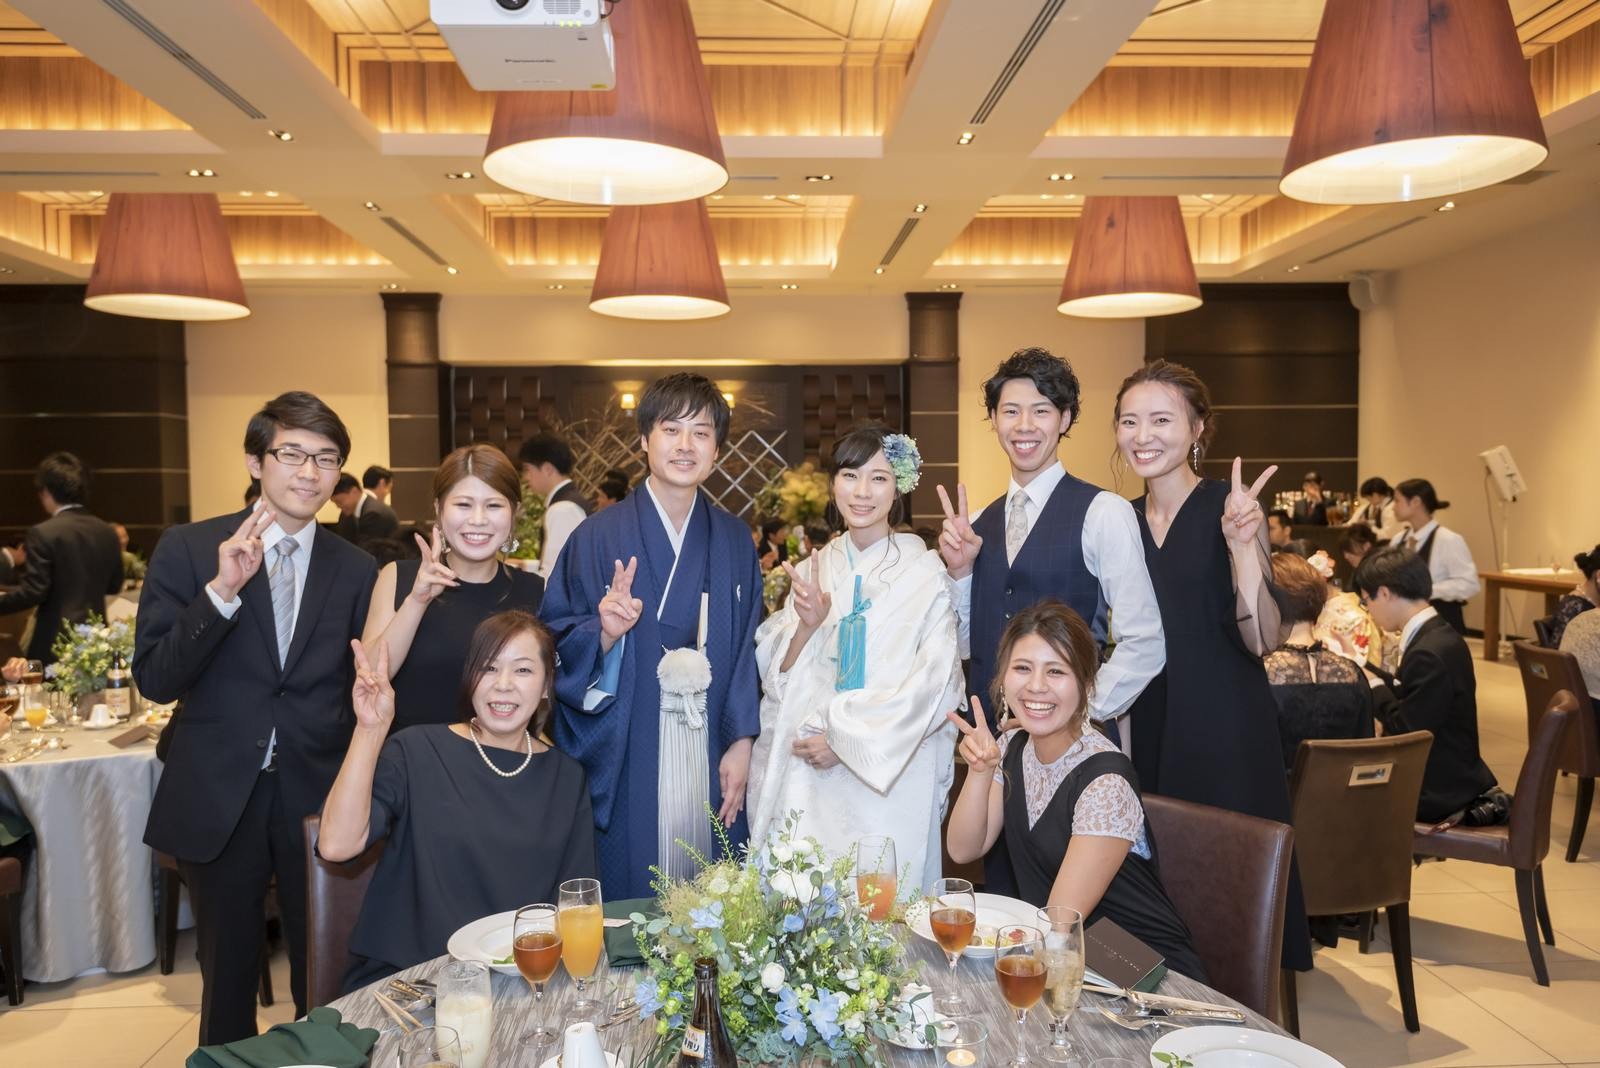 高松市の結婚式場アイルバレクラブ フォト